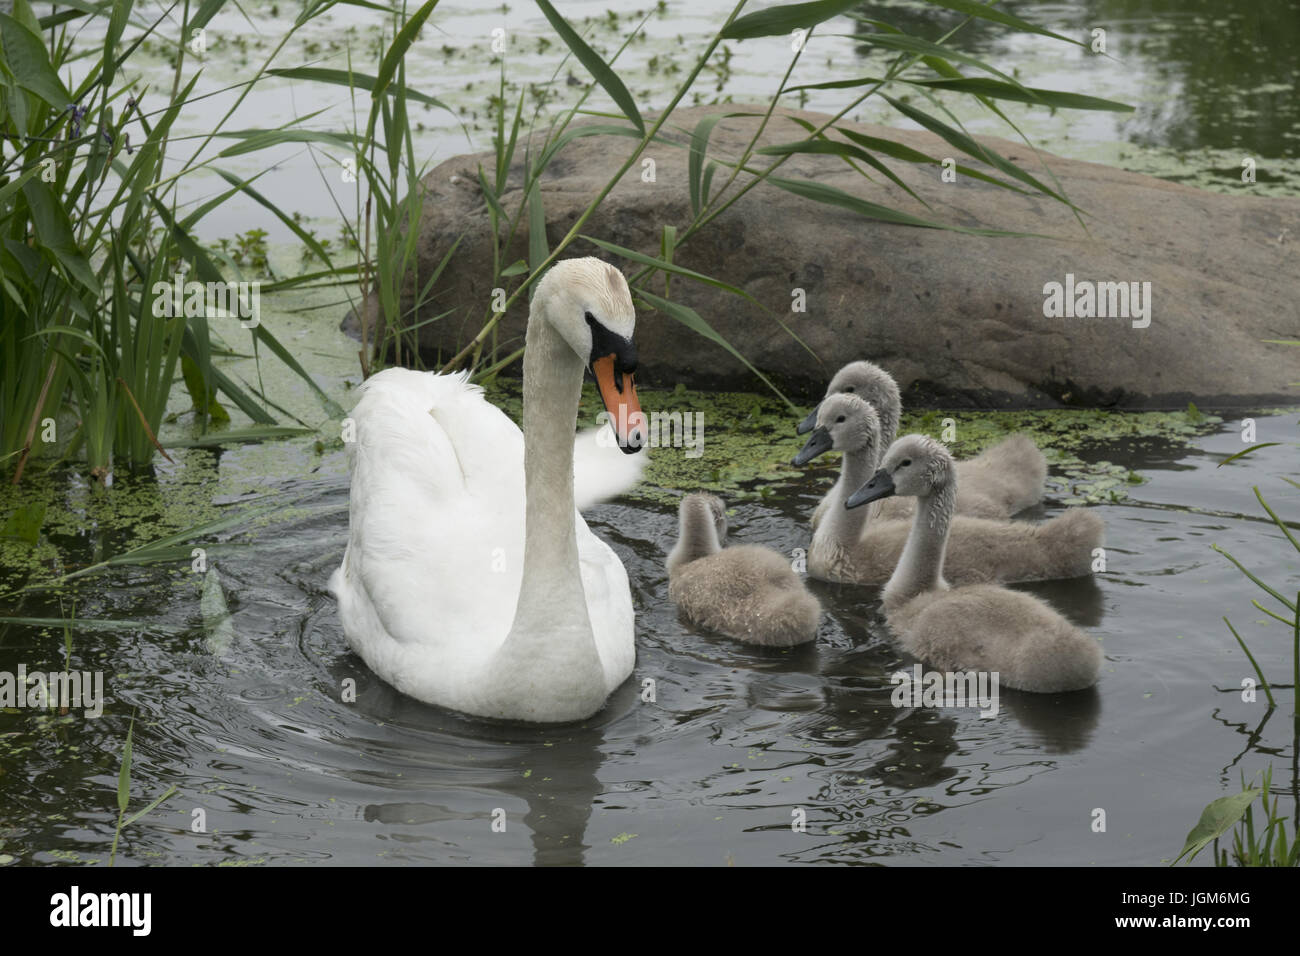 Mother swan with her babies (cygnets) feeding near the shore on the lake in Prospect Park, Brooklyn, NY. Stock Photo